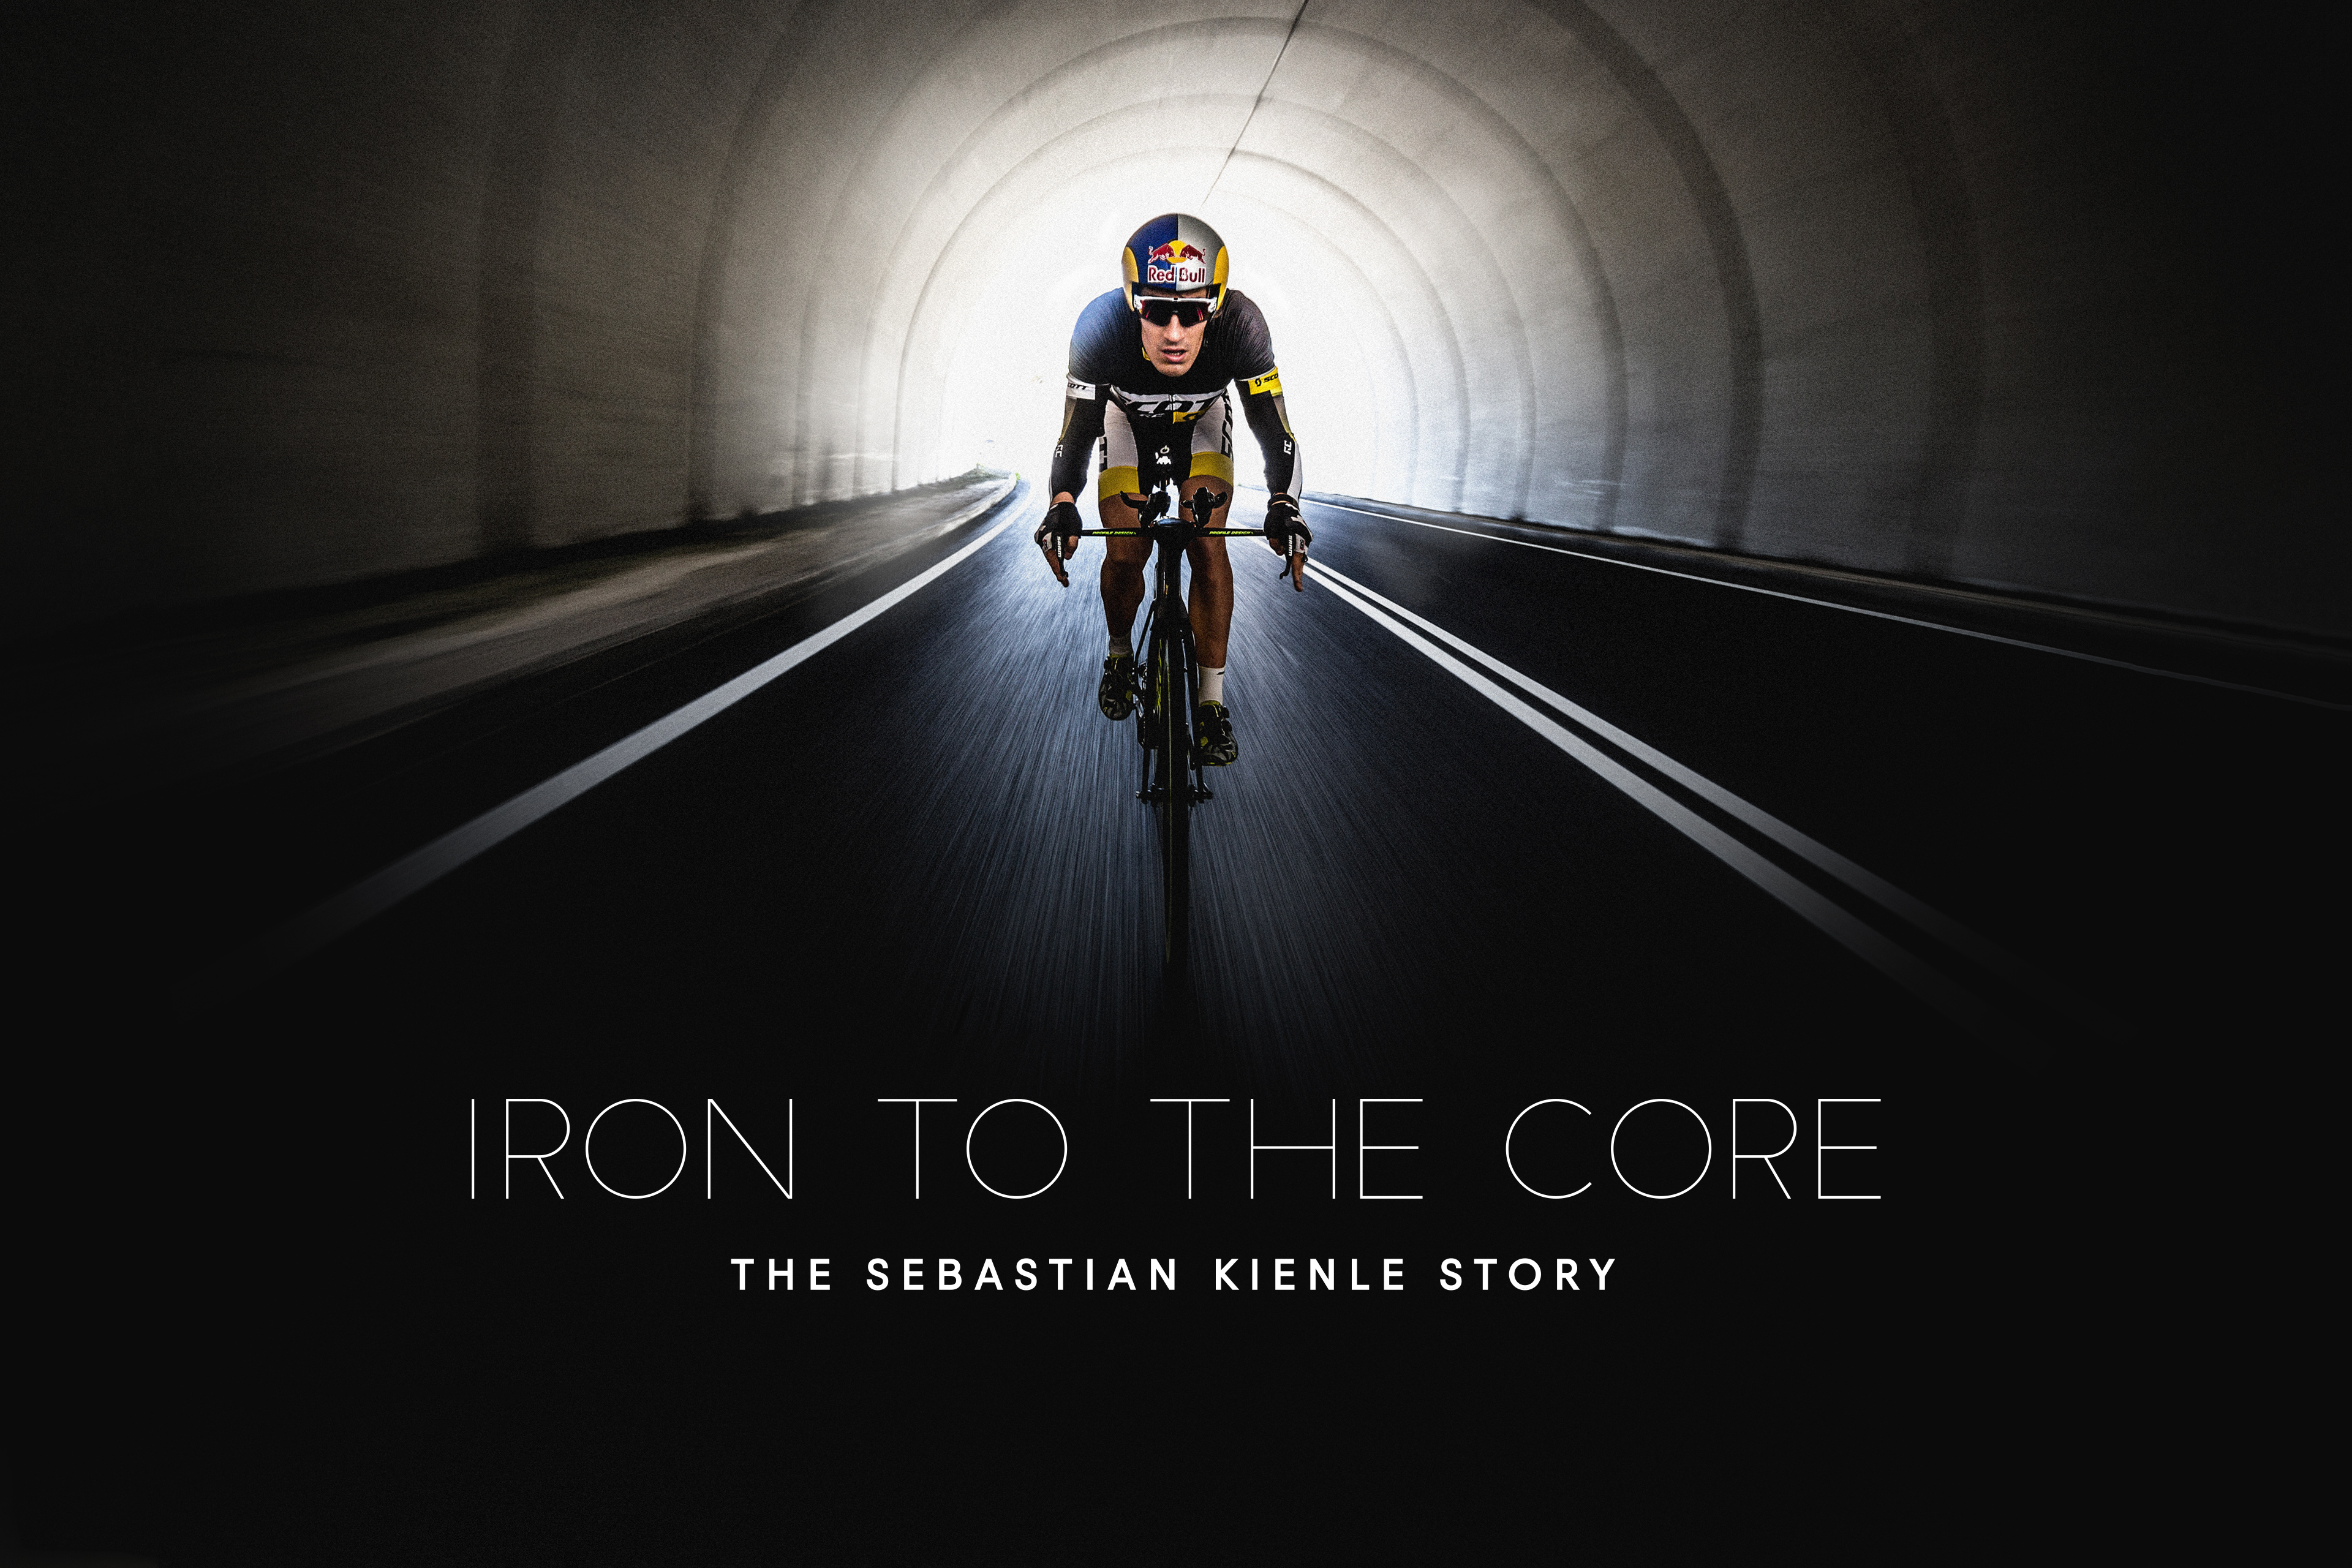 Kienle Story Iron to the Core